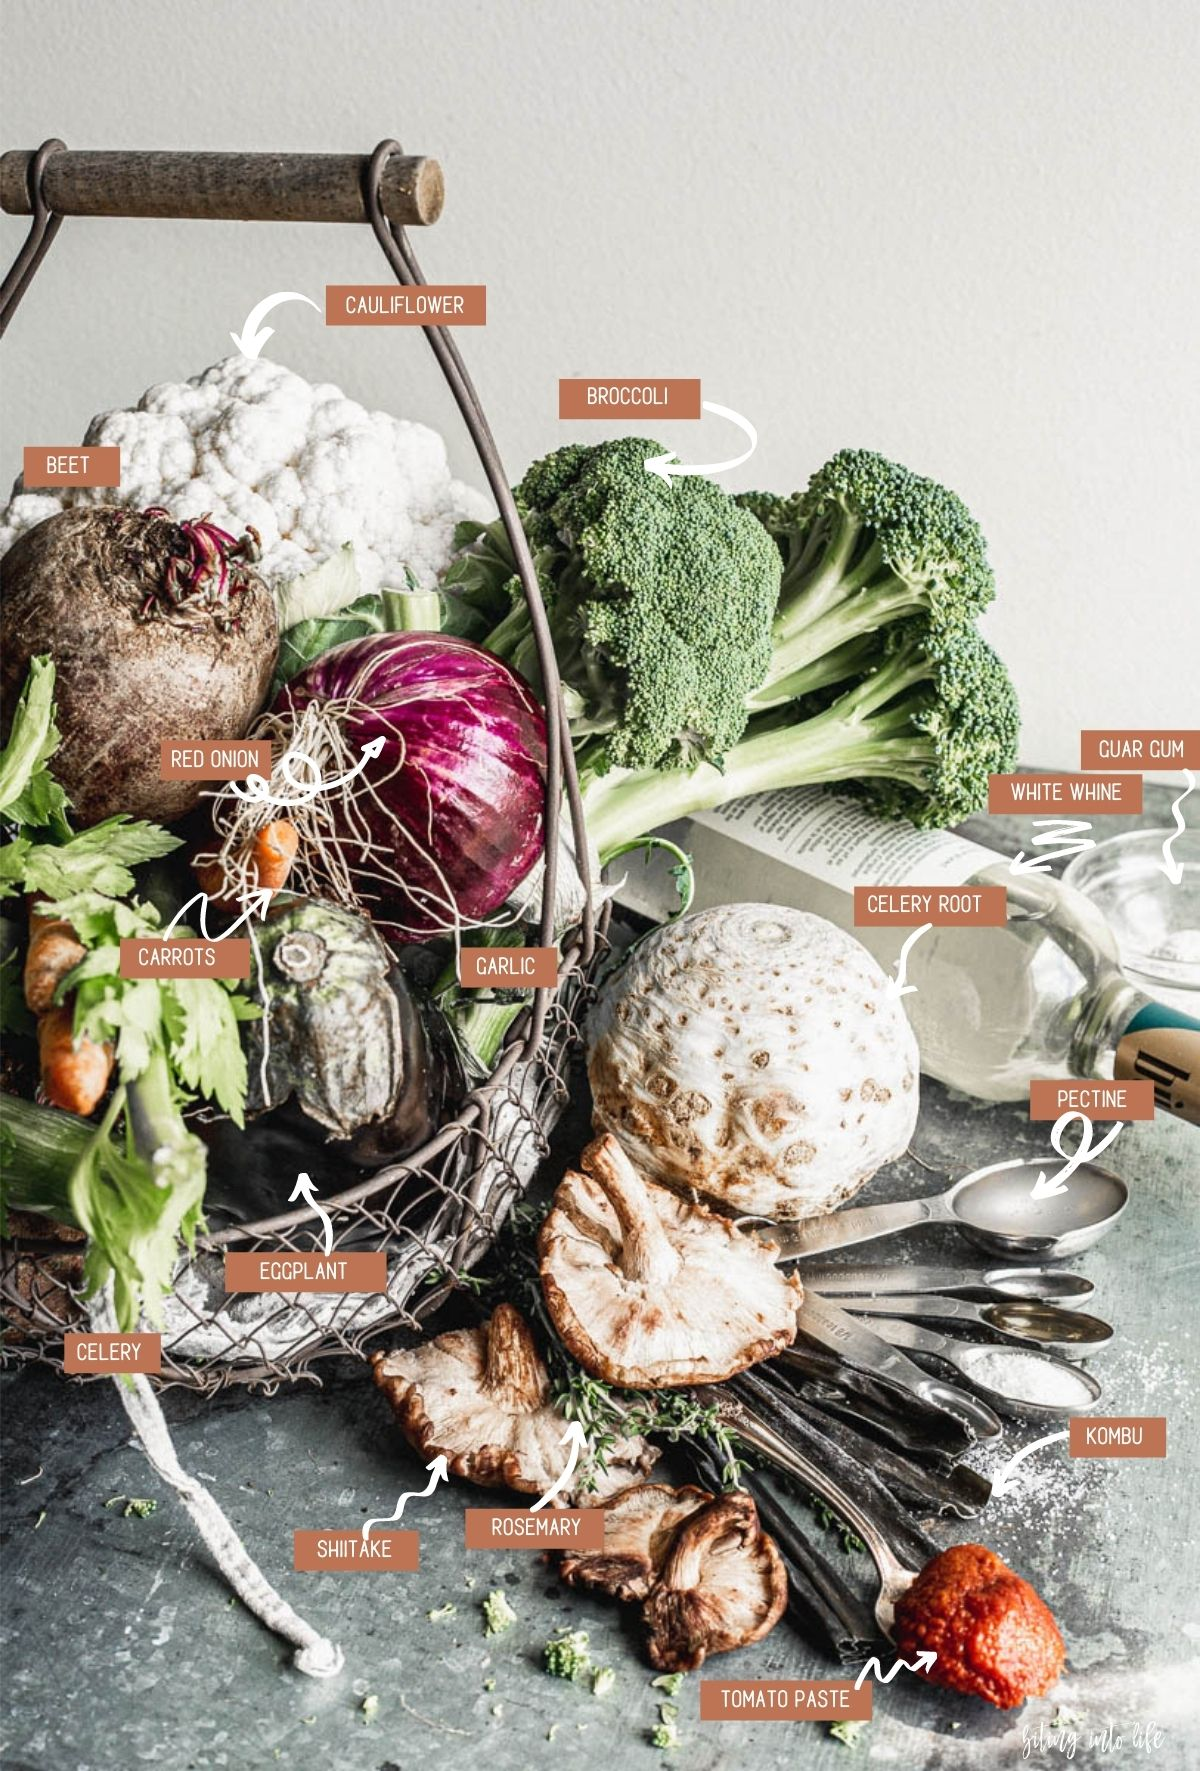 vegetables overflowing from a rustic spit basket with beside it, a bottle of wine lying down, a set of measuring spoons filled with pectin, olive oil, salt and tomato paste, on top of which rest a celeriac, sprigs of thyme, and shiitake mushrooms